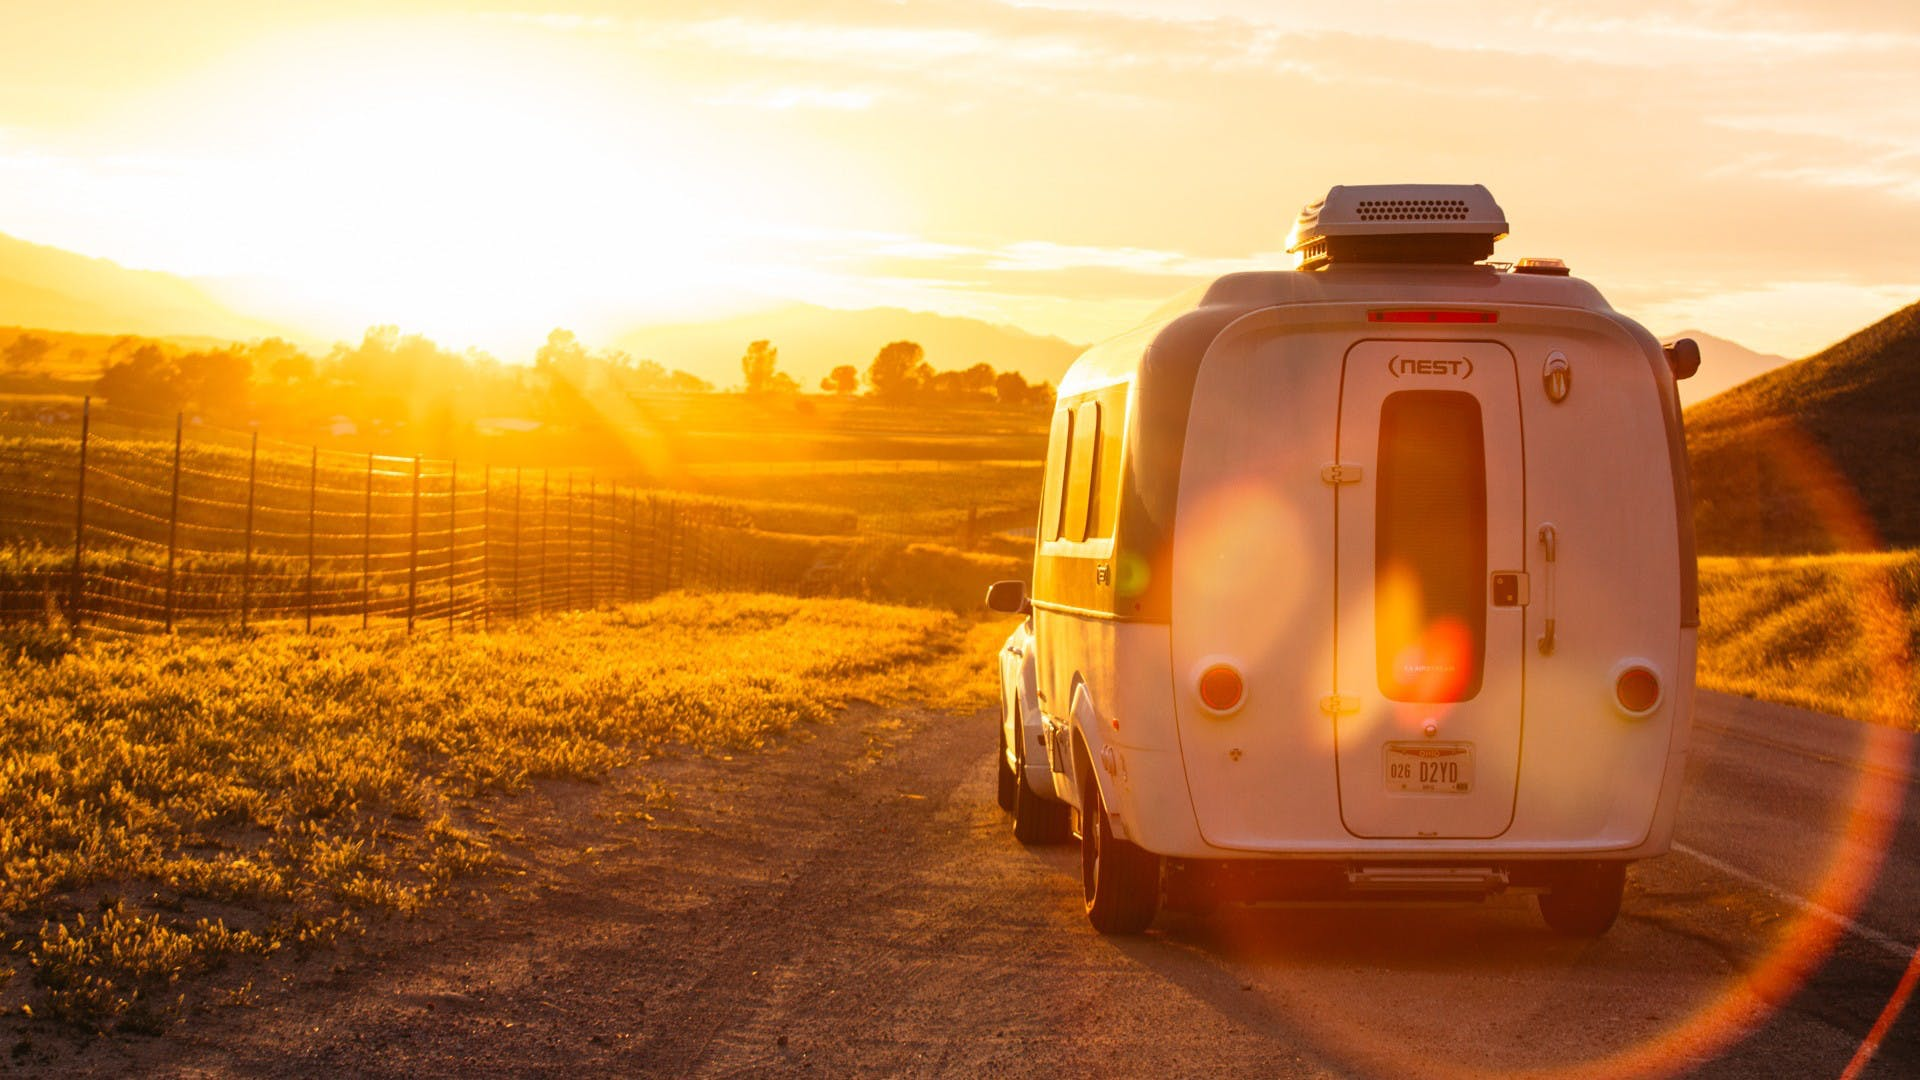 Airstream Travel Trailer sunset Nest